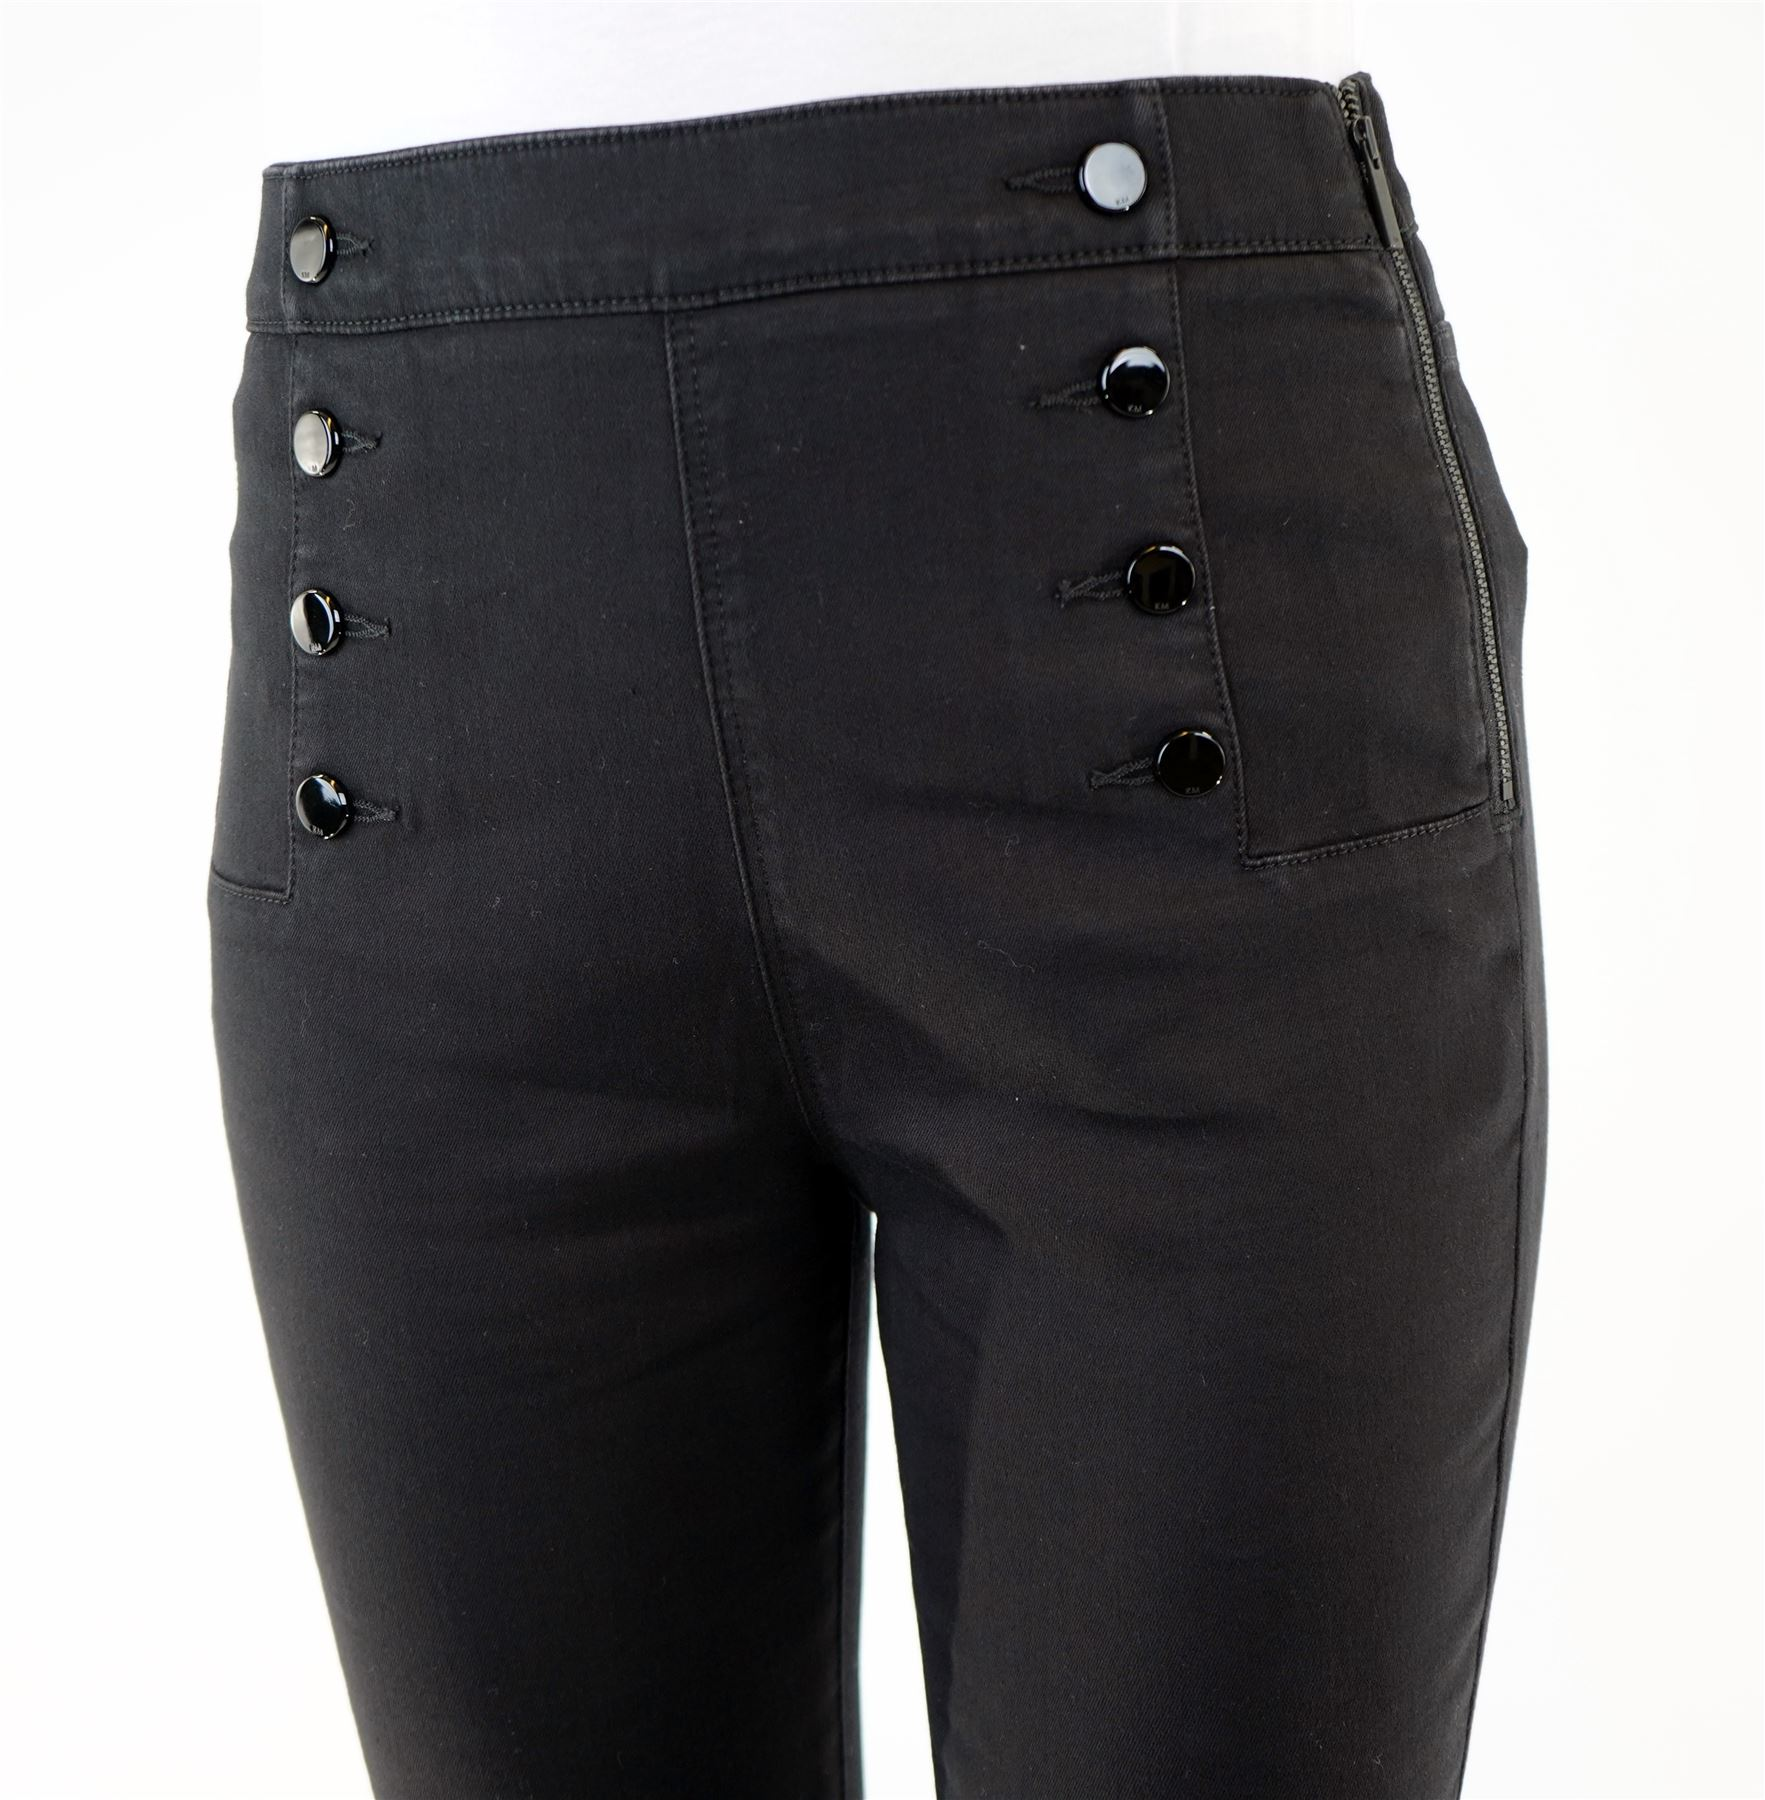 thumbnail 18 - Karen Millen Womens Casual Black Denim Button Jegging Ladies Jean Stylish Gift